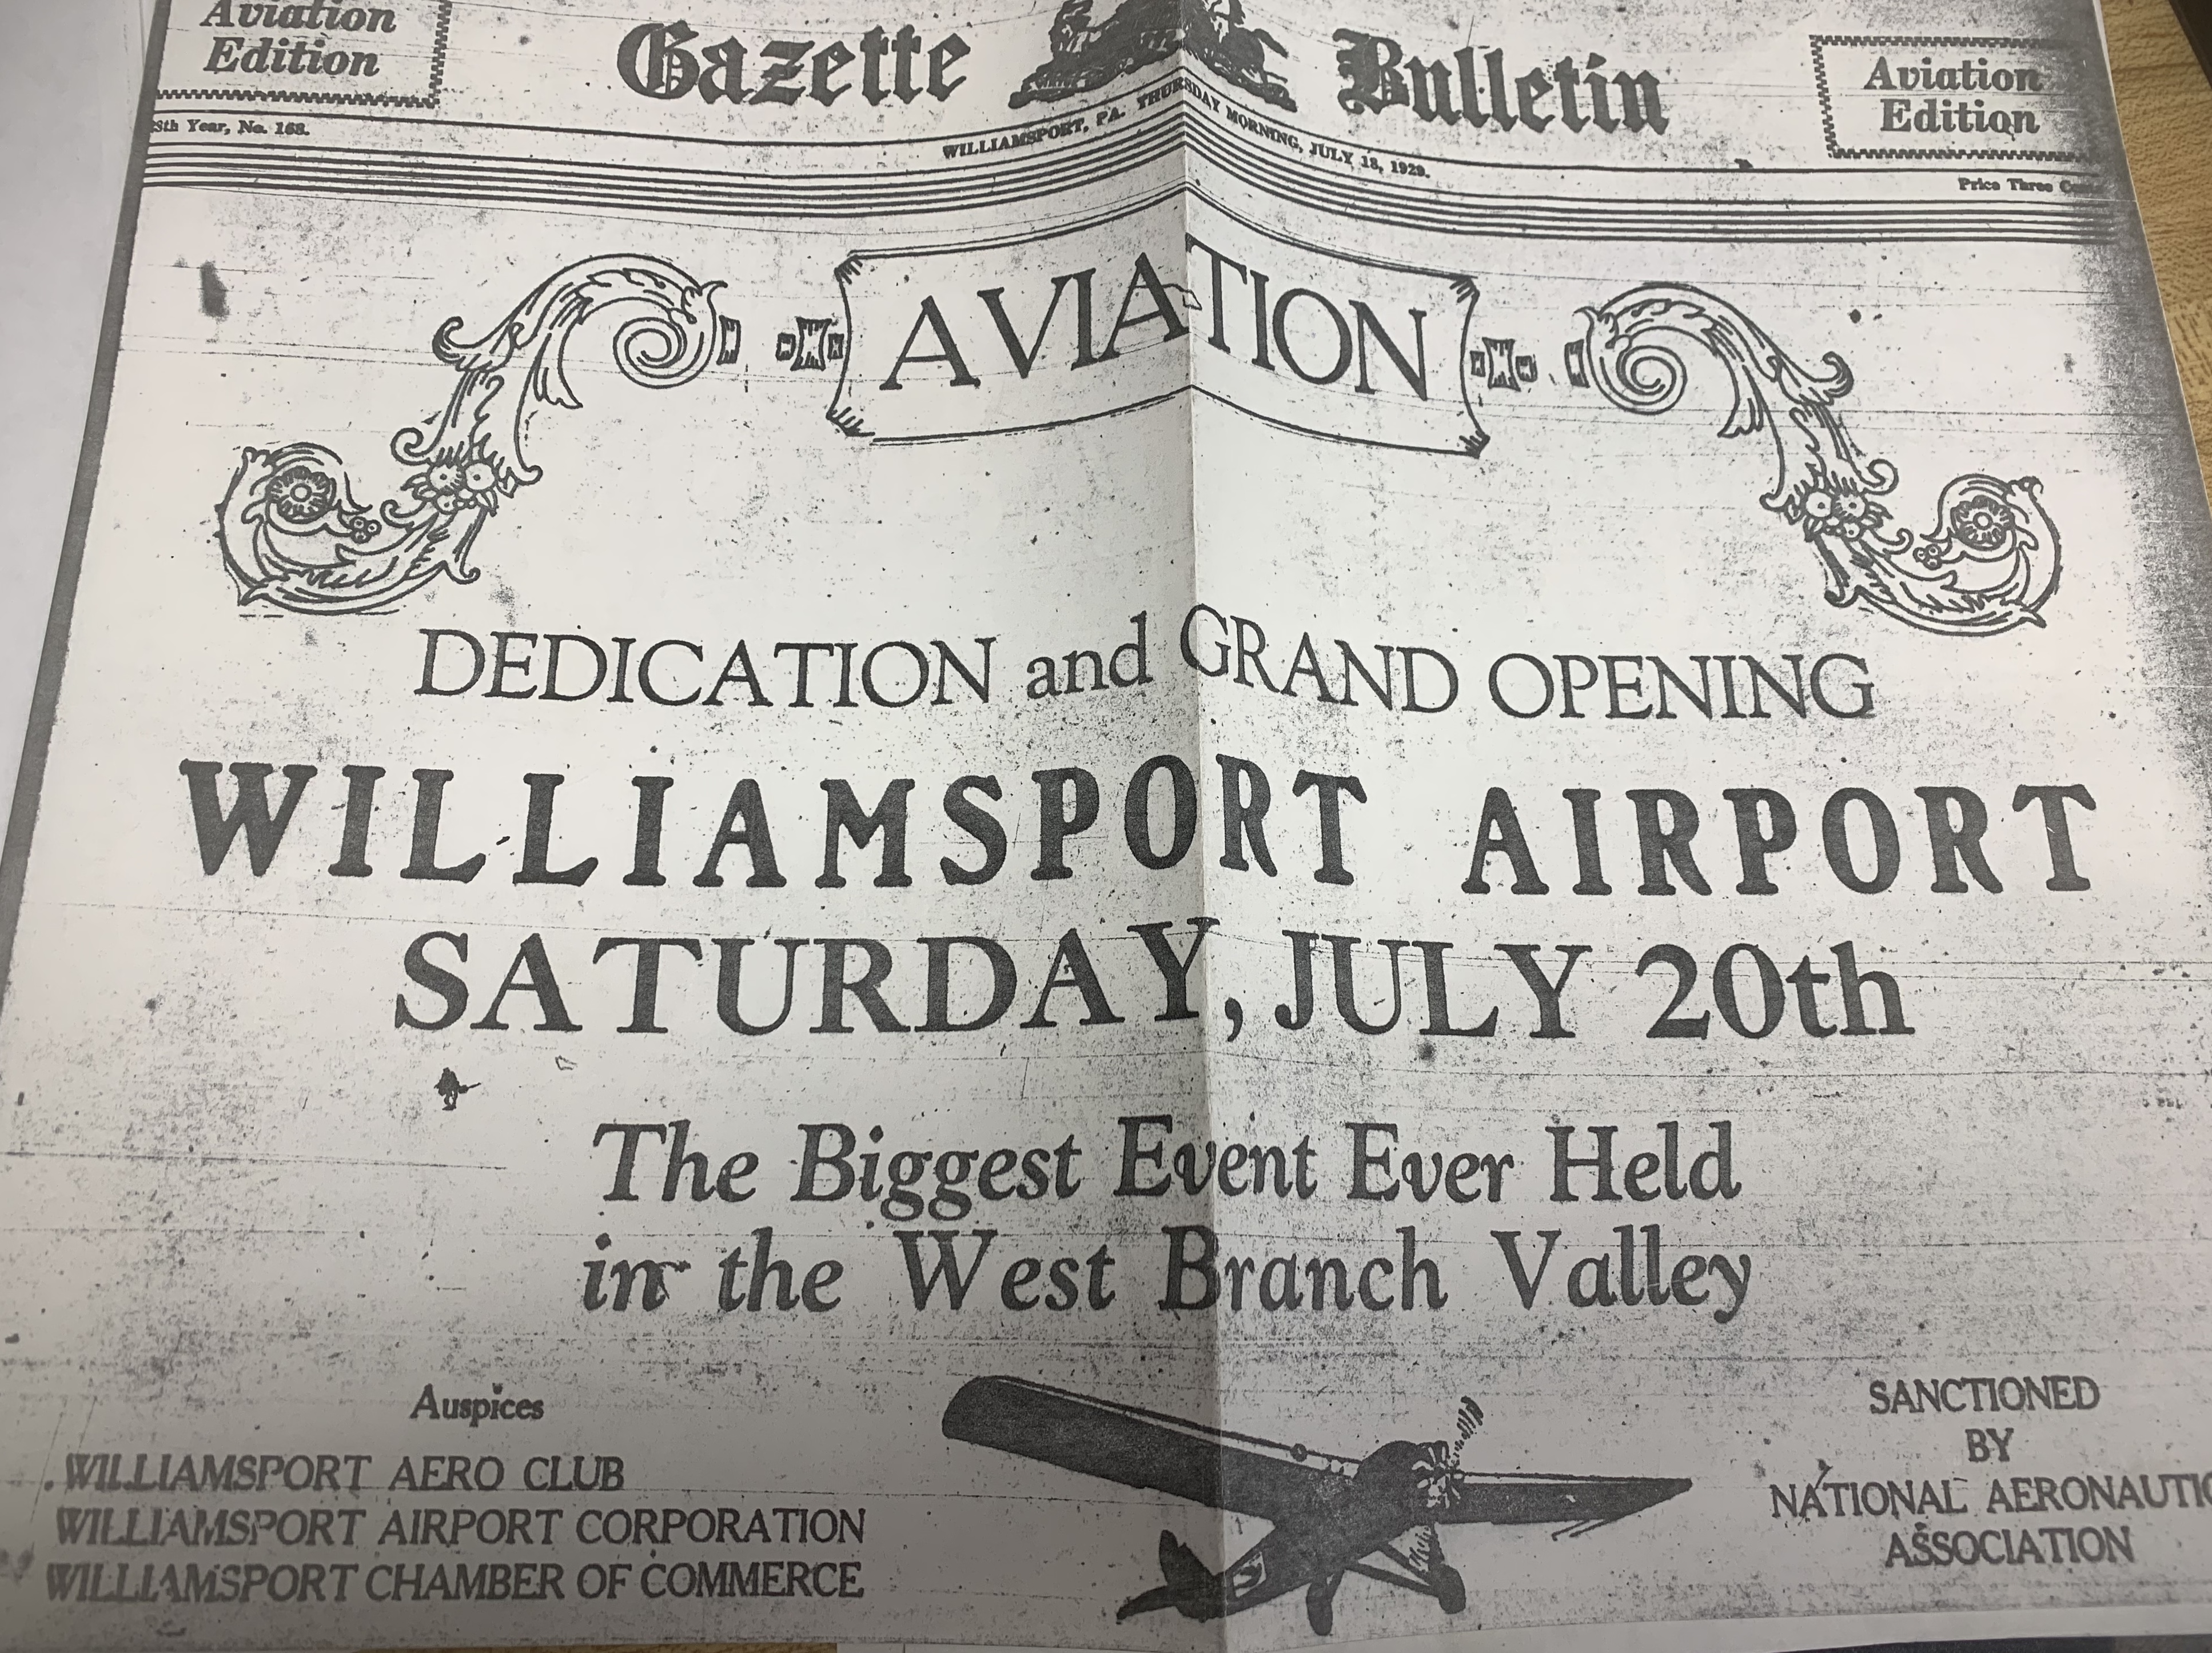 Newspaper advertisement July 18, 1929